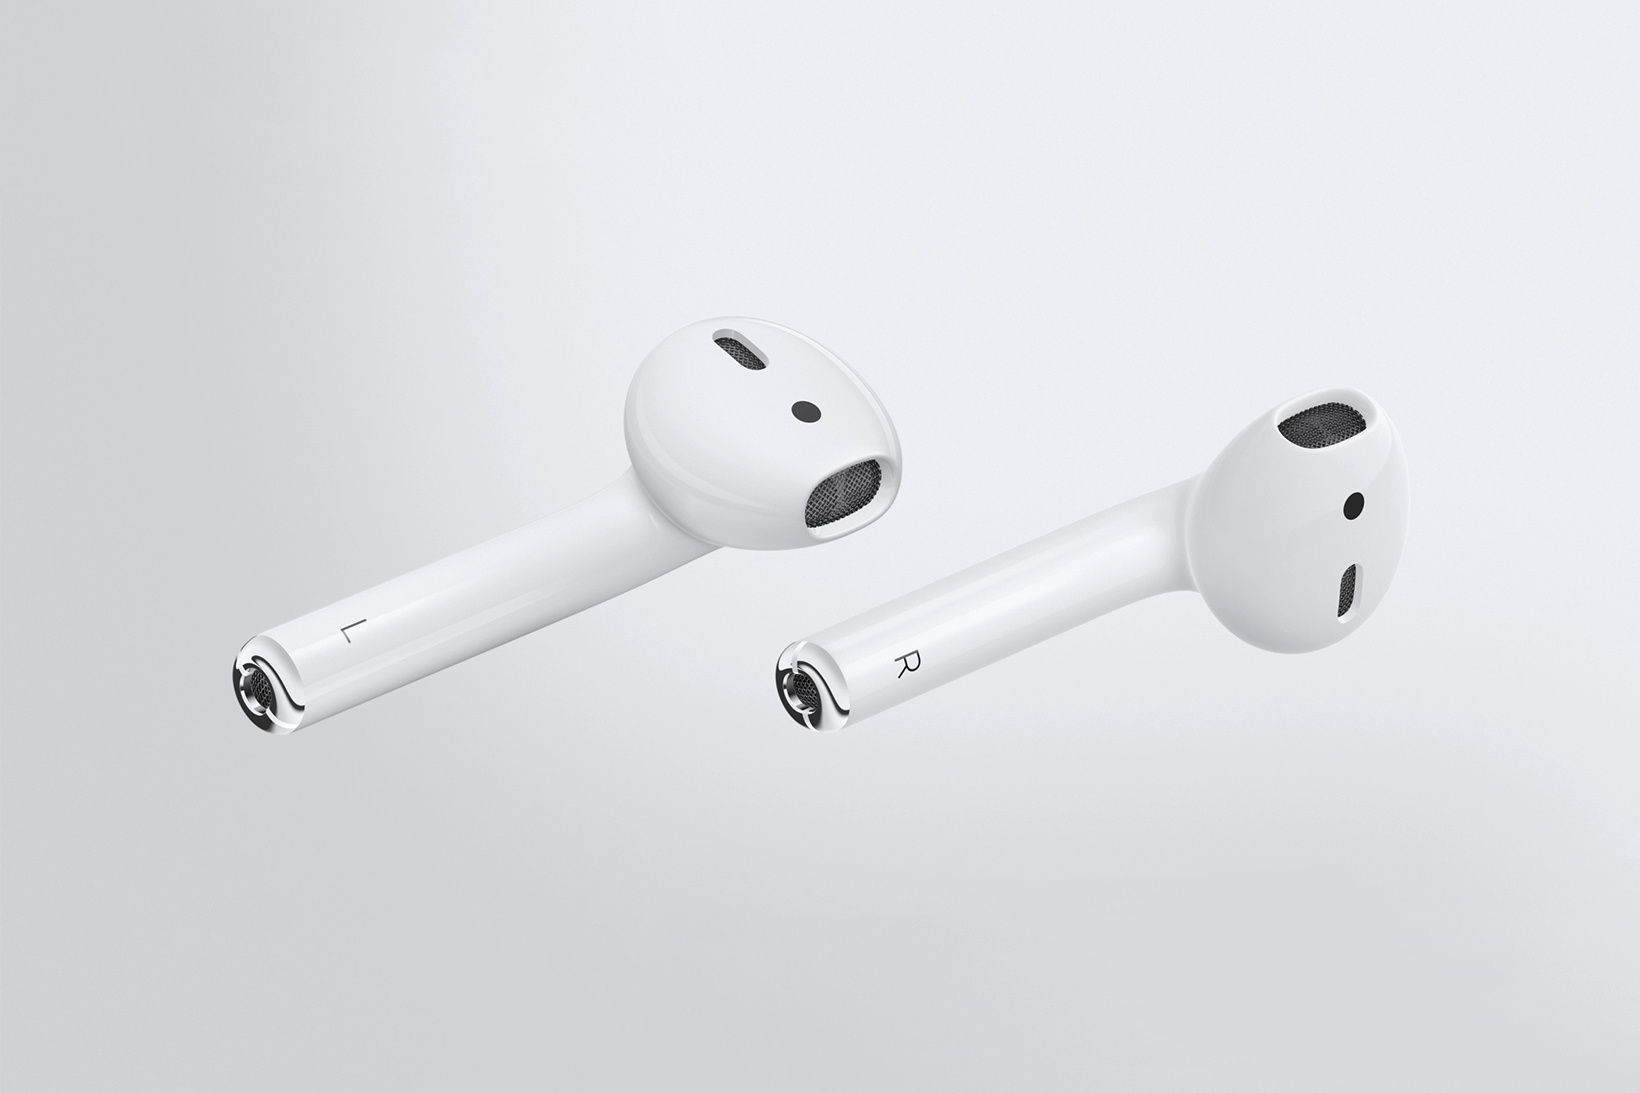 c6f6c44e092 Upgraded AirPods Will Inspire Companies Like Google and Amazon to Make  Their Own Custom Wireless Earphones, Says Analyst